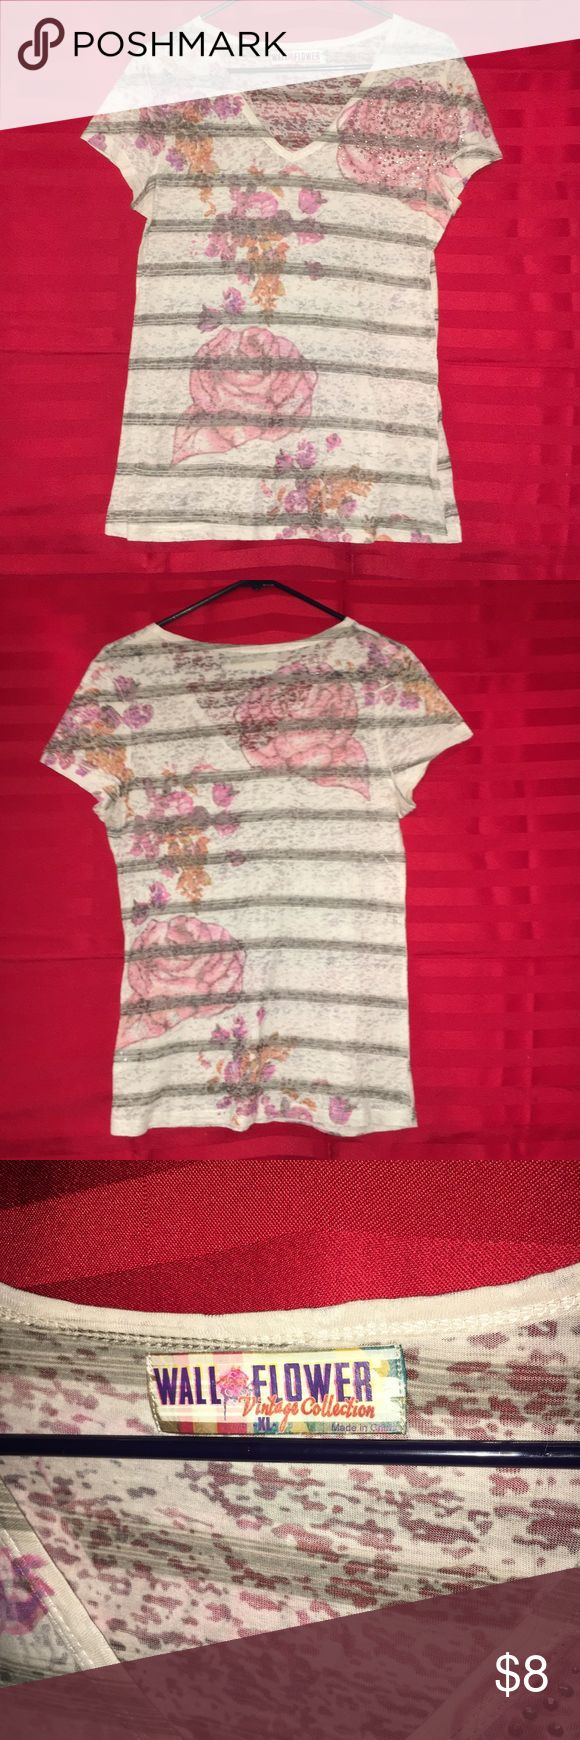 Wallflower- burnout tee size Large Excellent condition Riveted on top right Burnout tee with flower design over white/gray stripe. Very soft and comfortable. Wallflower Tops Tees - Short Sleeve